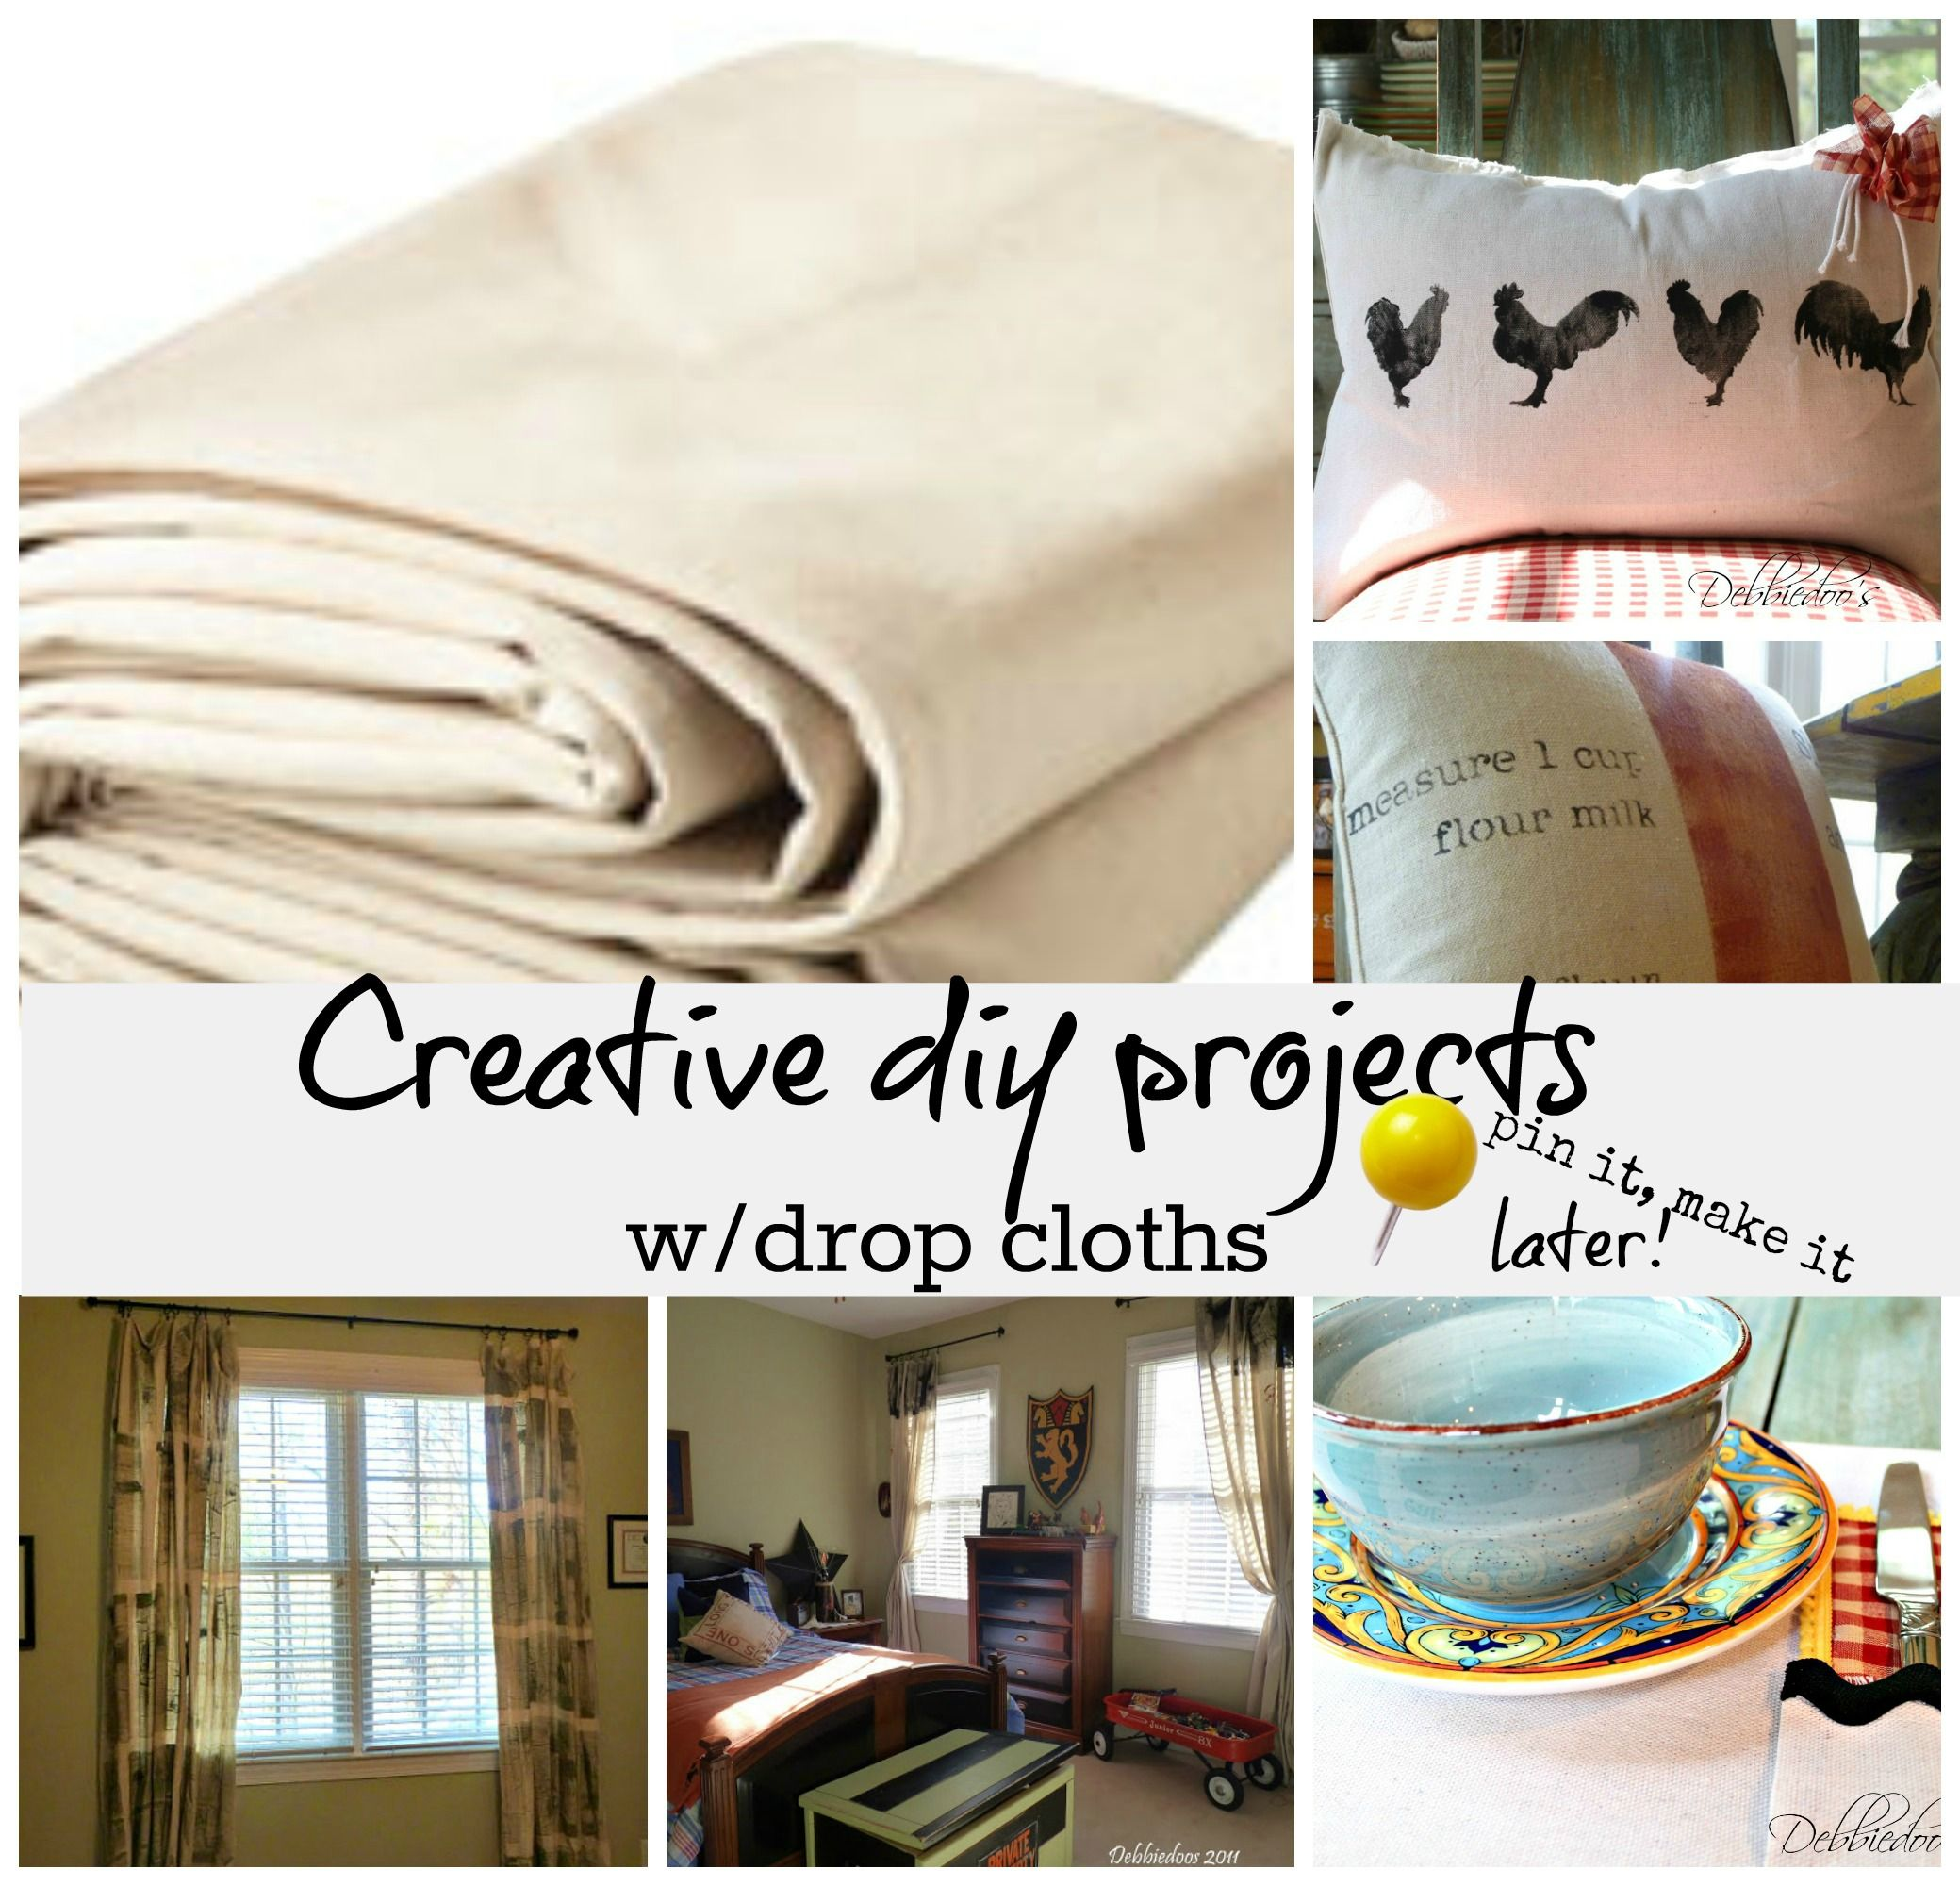 Diy projects out of drop cloths | Diy things, Drop and Creative